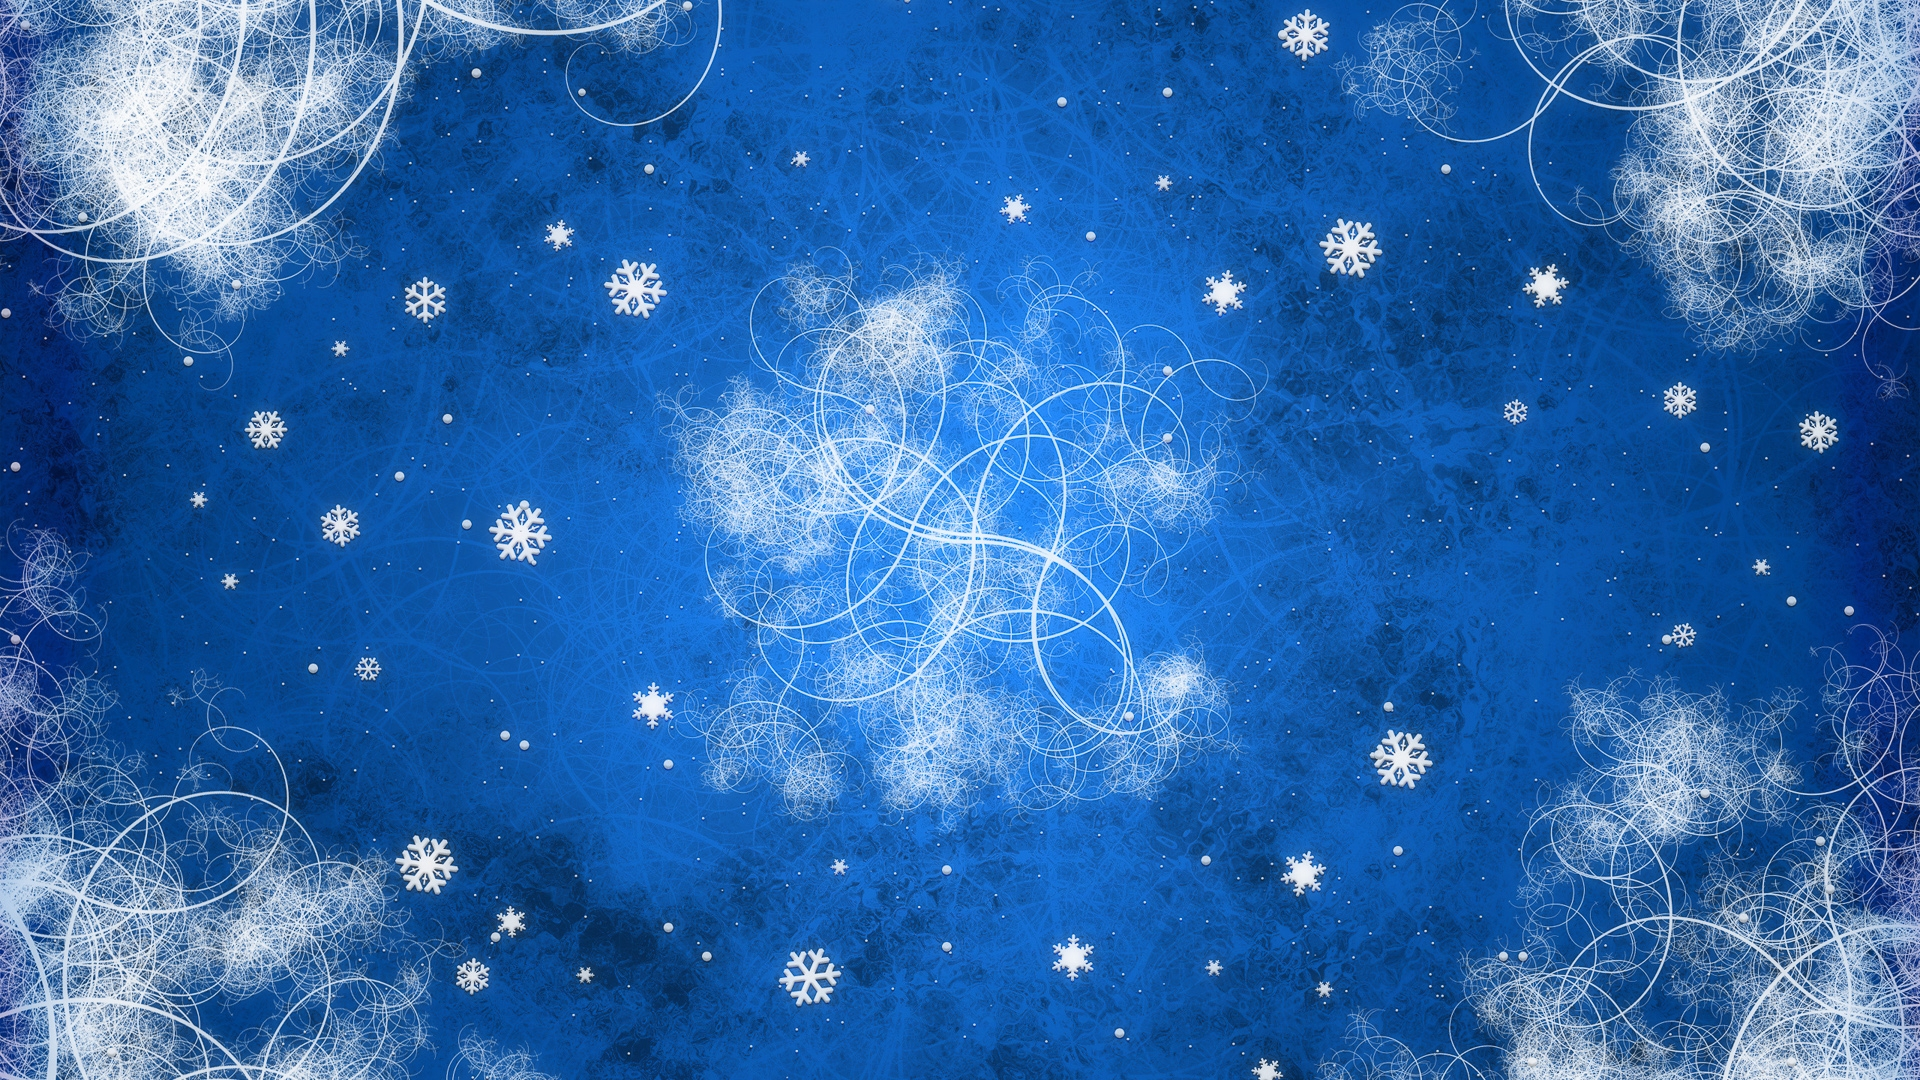 background pattern snowflake